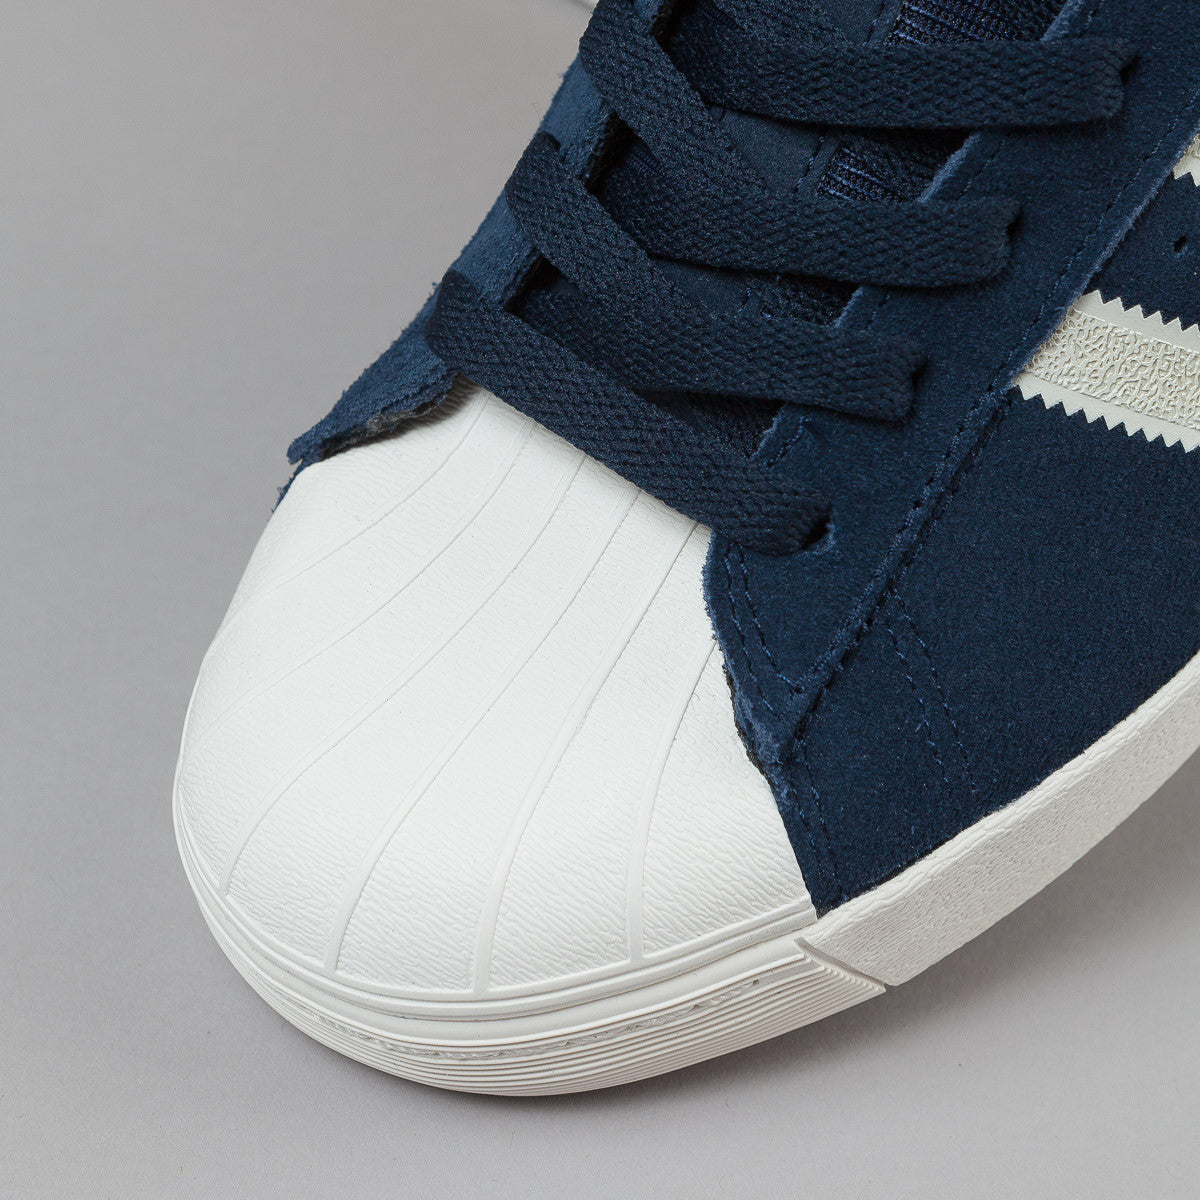 近賞Kasina x Cheap Adidas Originals ��新作Superstar 80s